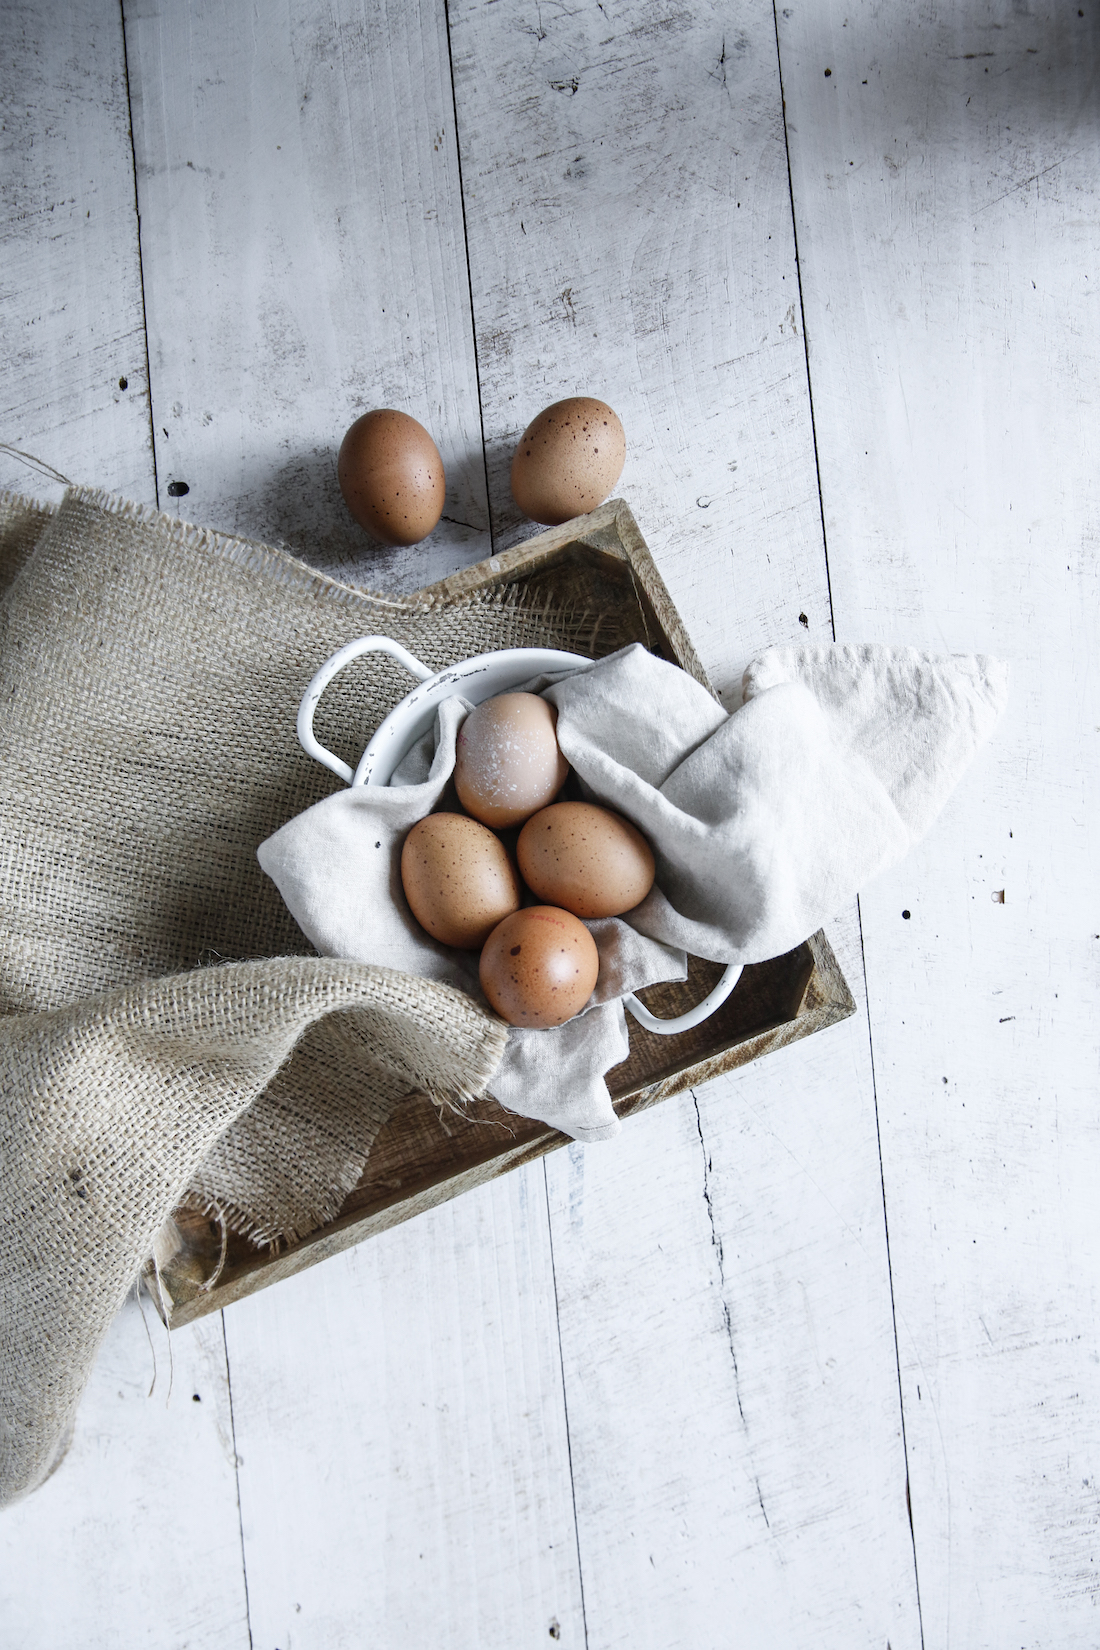 Eggs! FULL of protein! Boiled eggs are an incredible snack. Yummy, filling & super healthy!